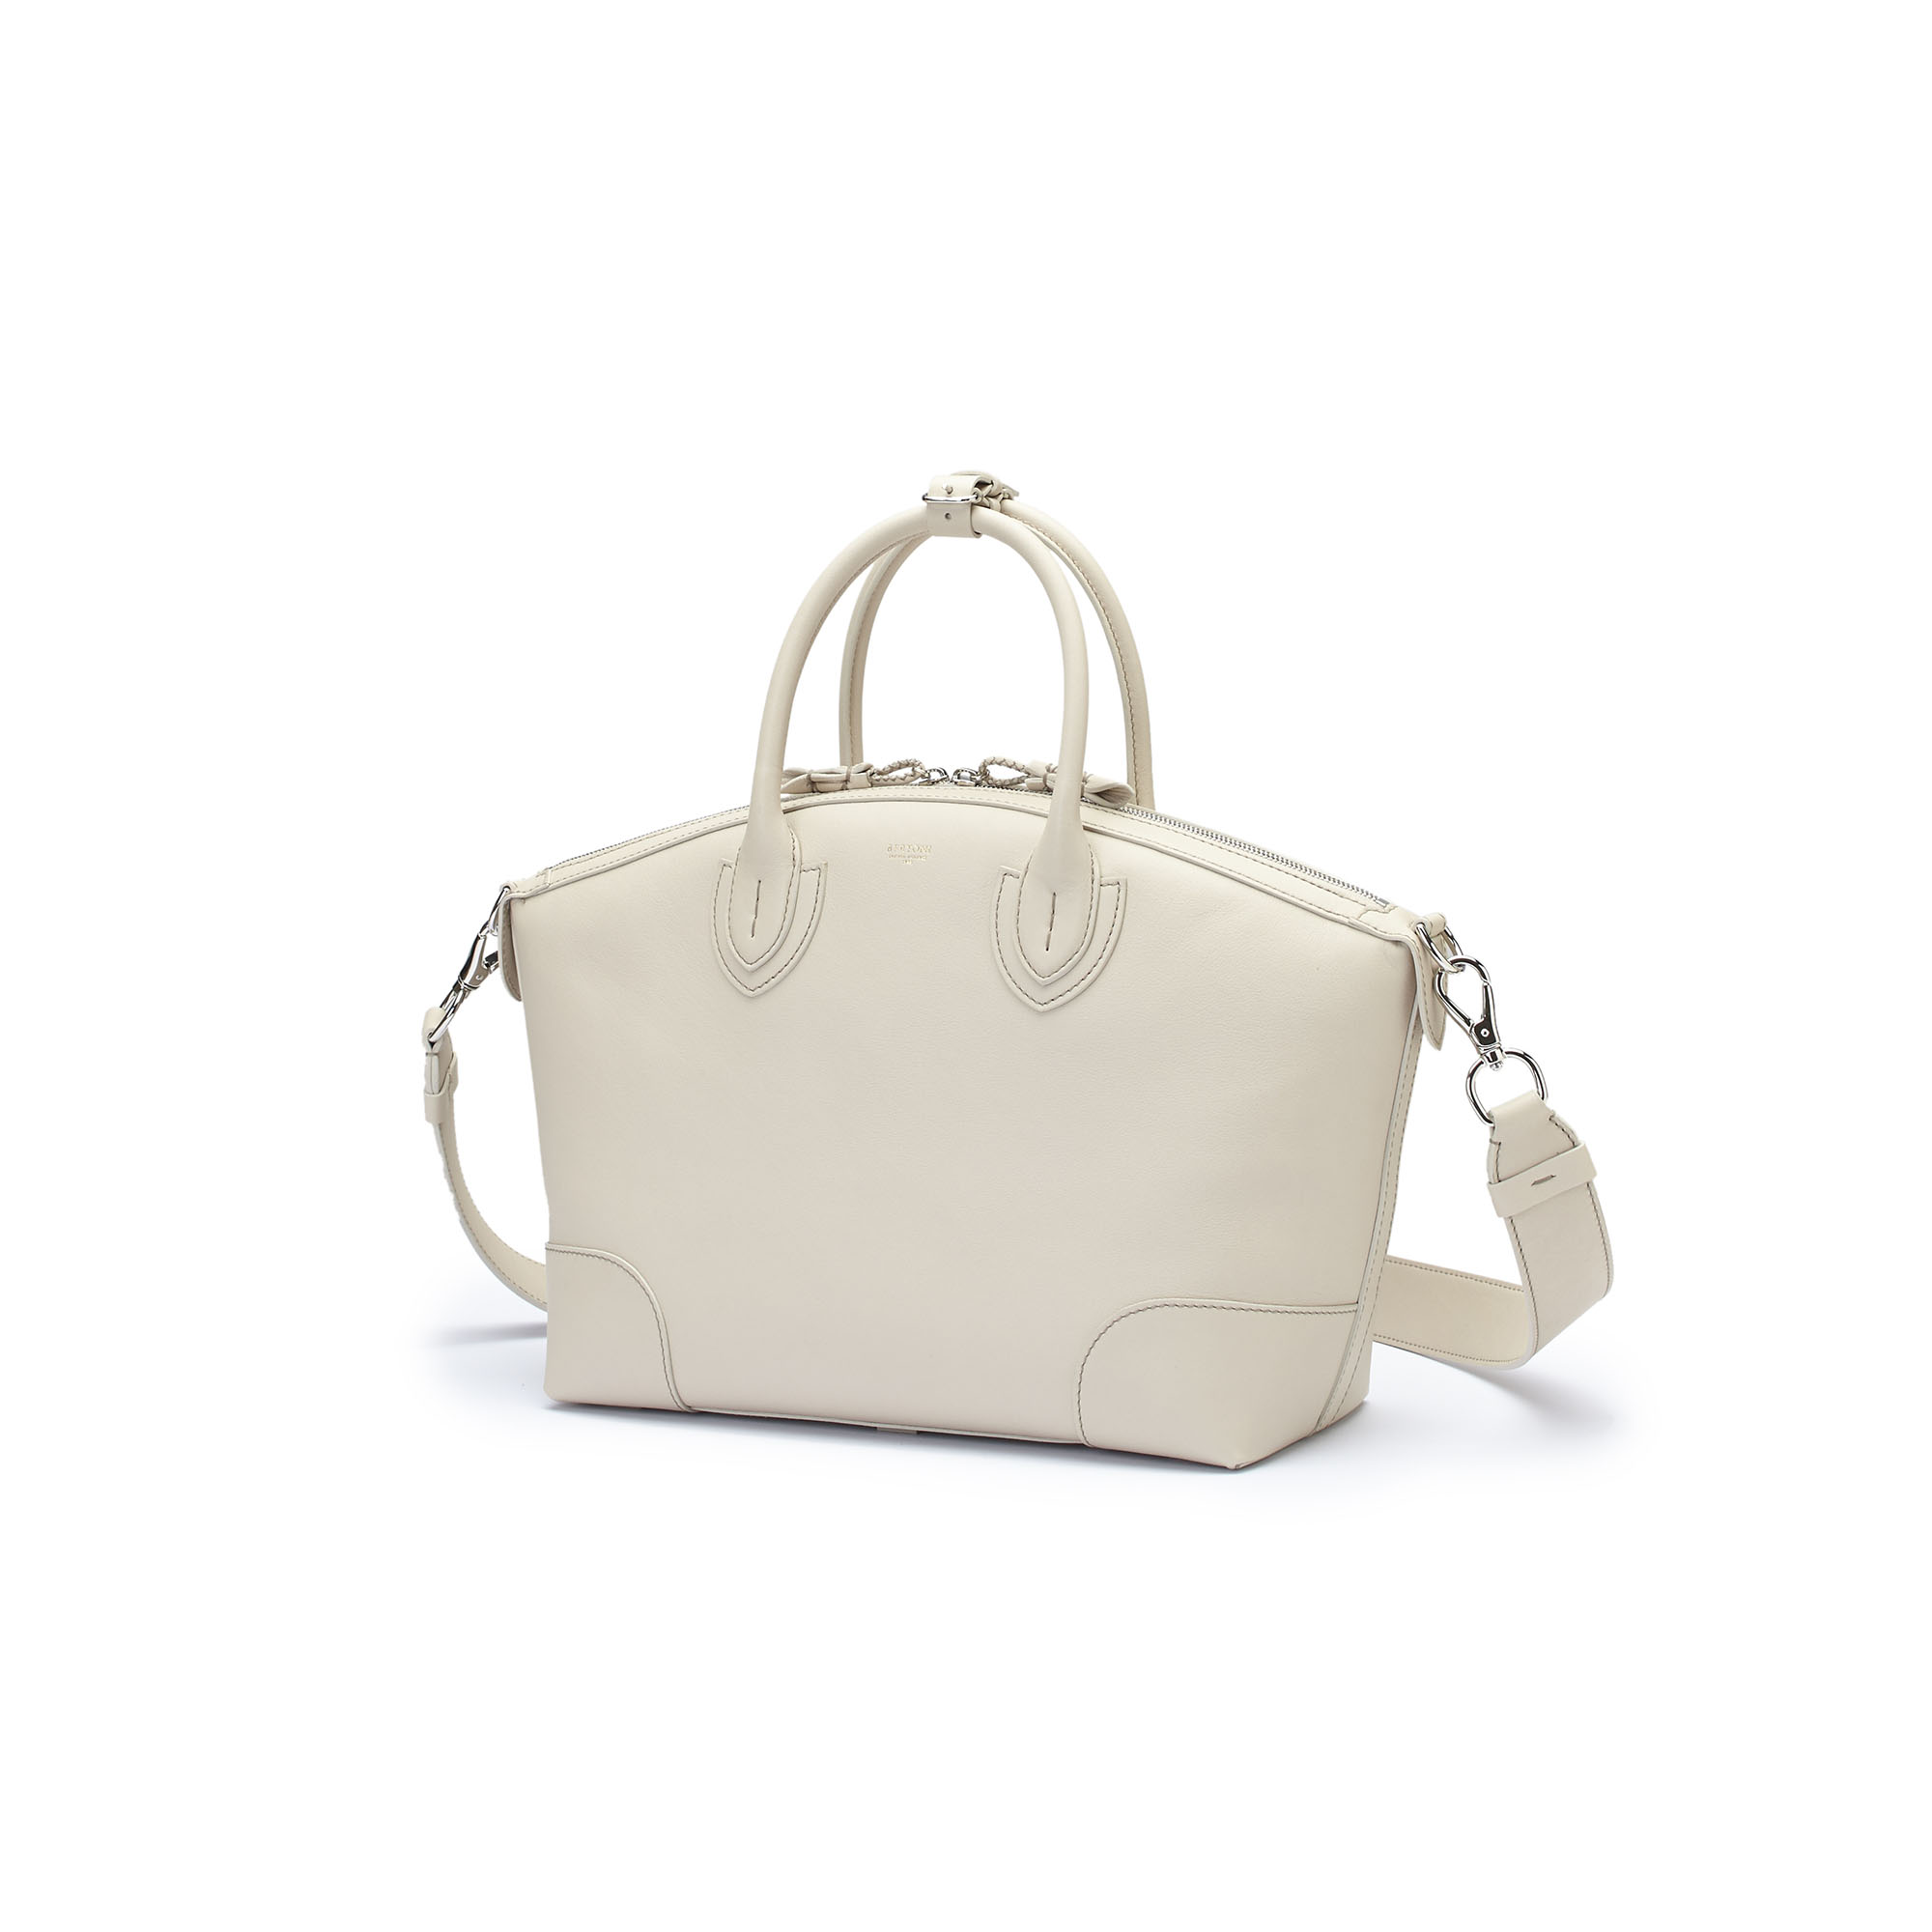 The ivory soft calf Anija bag by Bertoni 1949 04